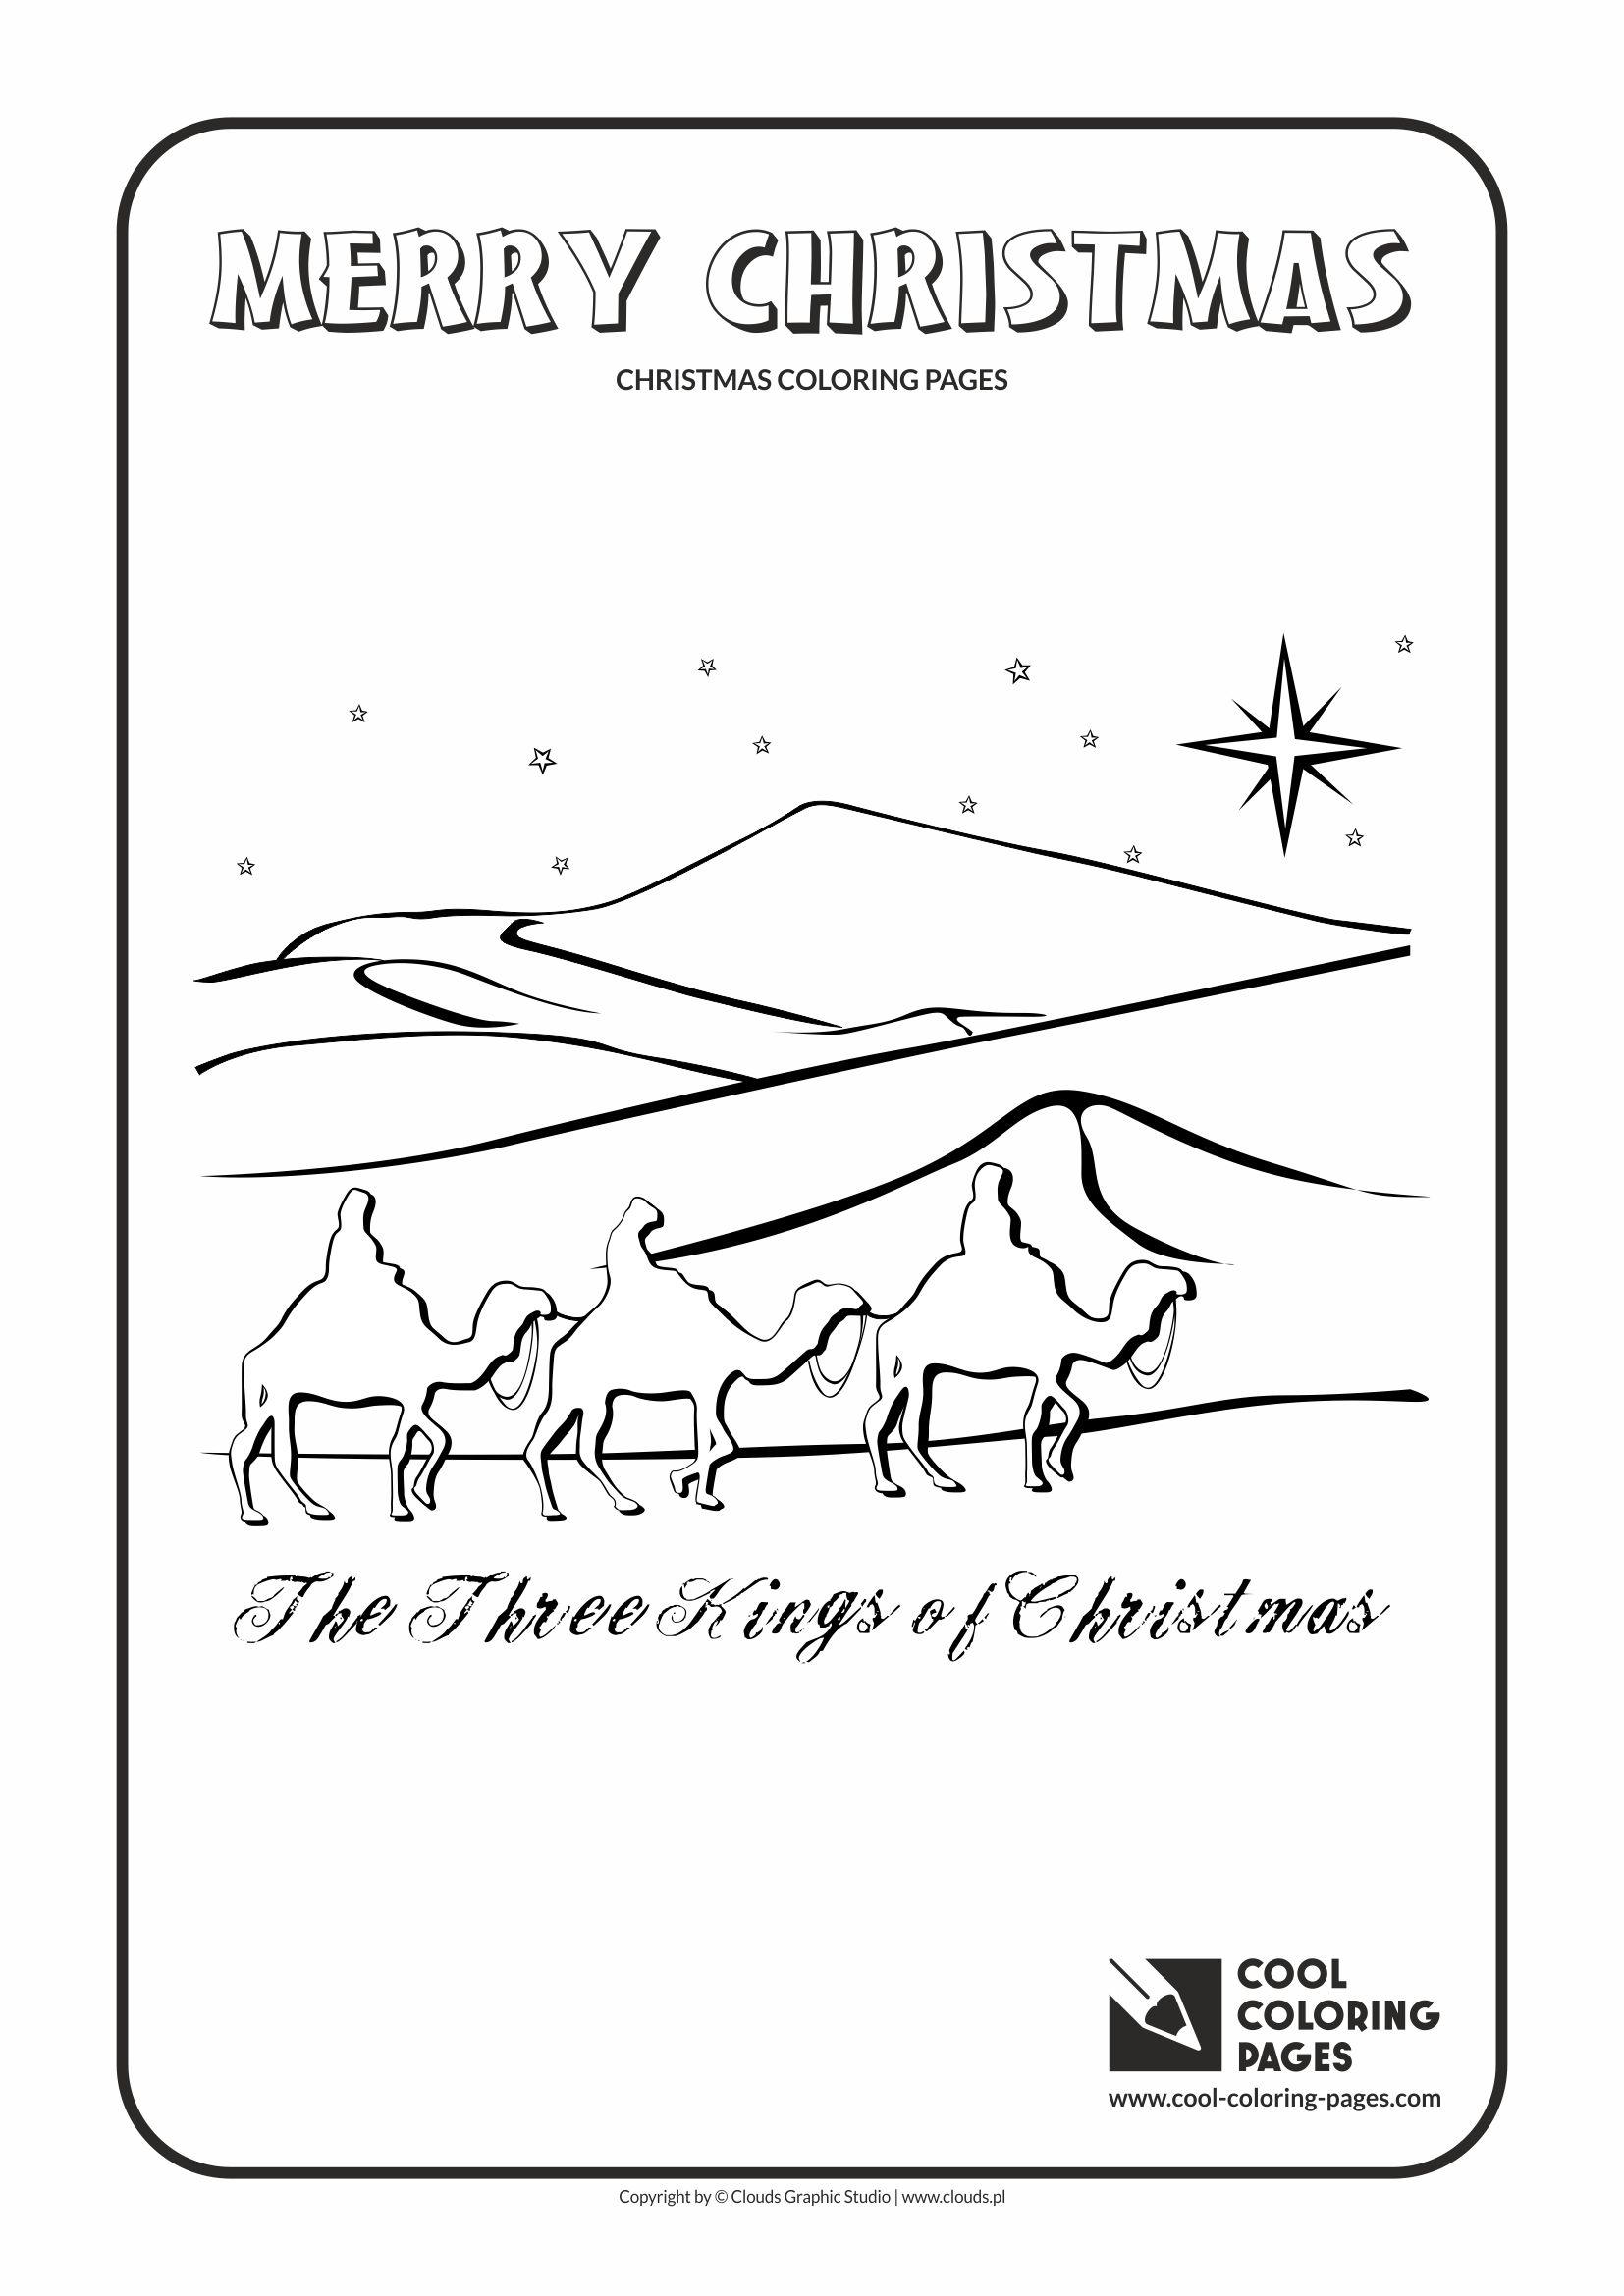 Cool Coloring Pages - Holidays / Three Kings of Christmas / Coloring page with Three Kings of Christmas